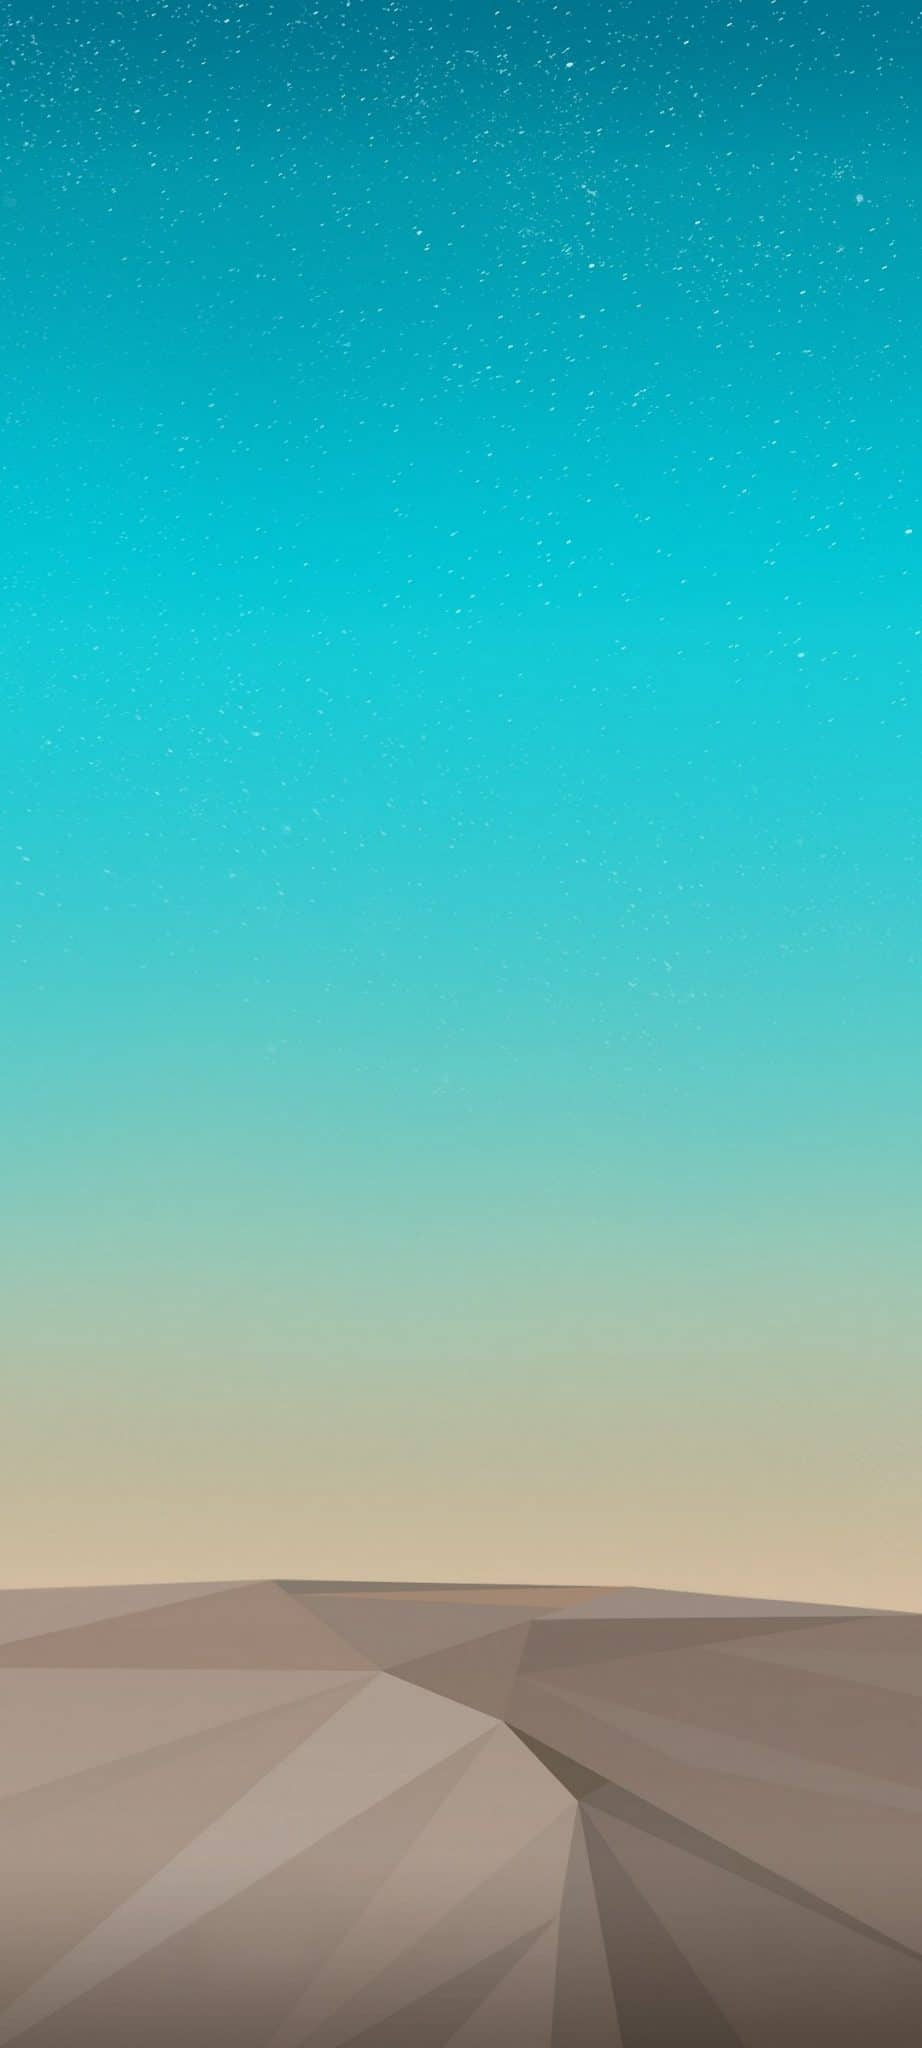 Download Samsung Galaxy M30s Wallpapers Full Hd Resolution